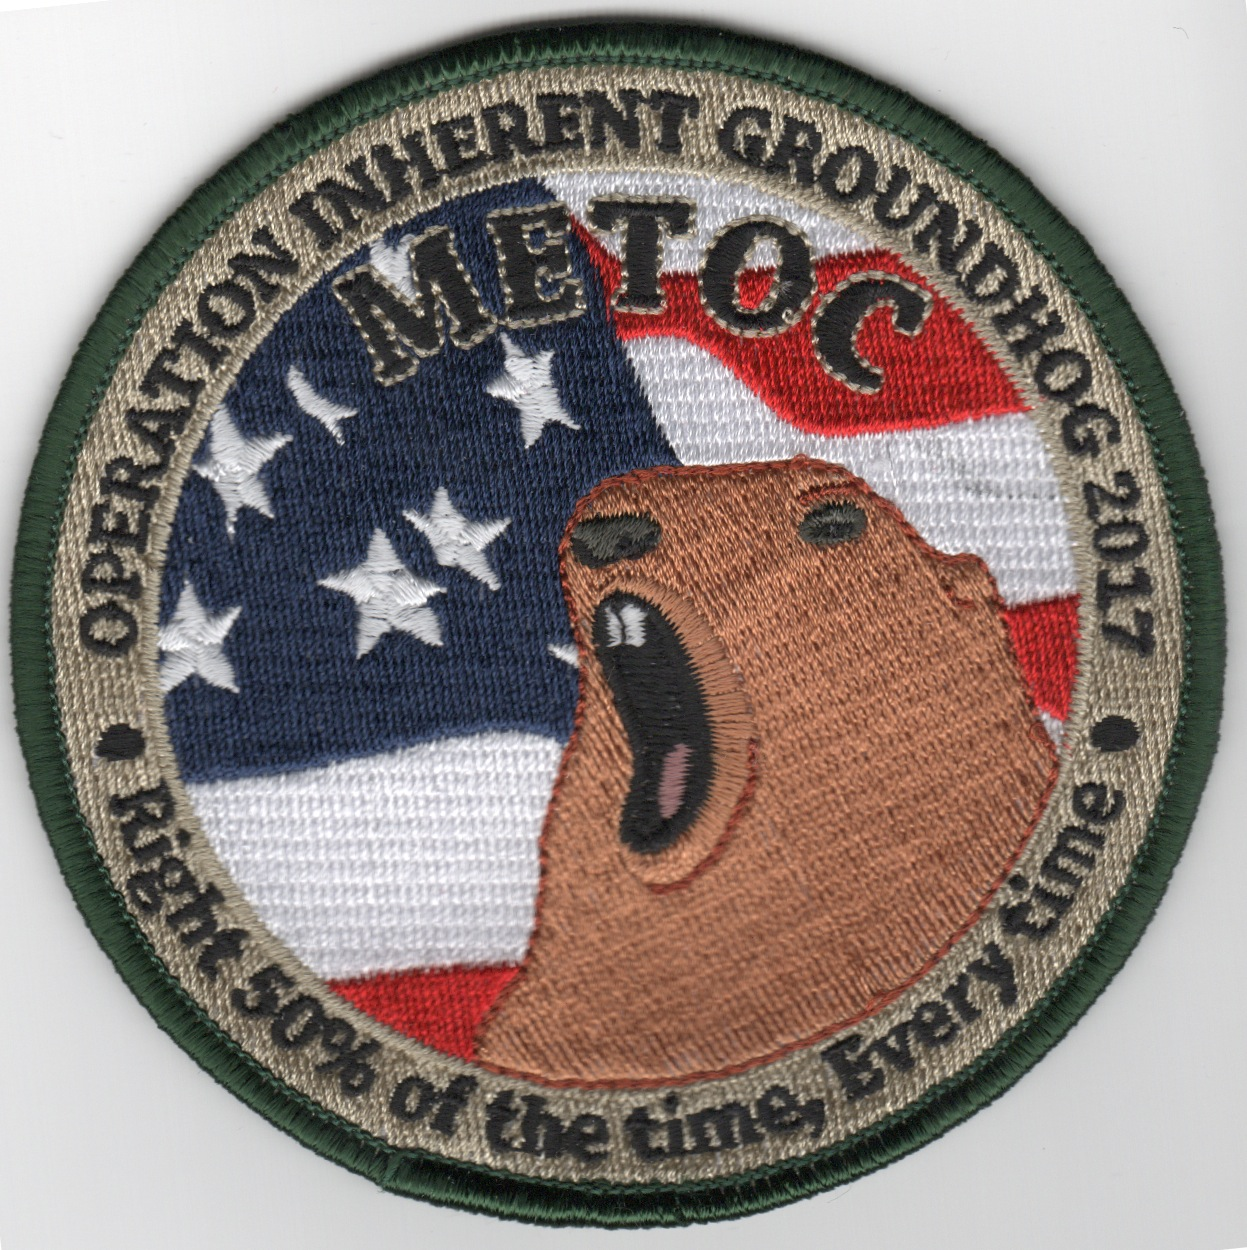 USN METOC 2017 Groundhog Day